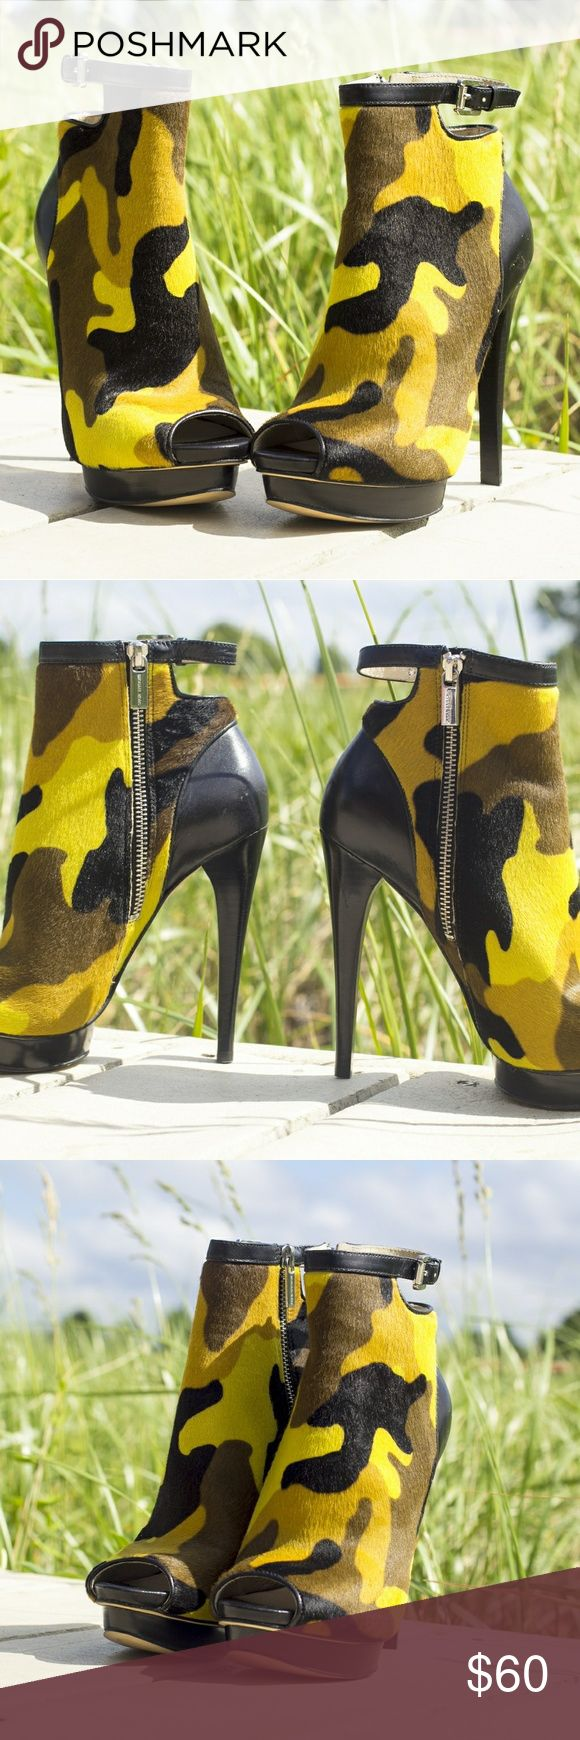 Michael Kors Camouflage booties These are super hot 🔥peep toe platform booties!  The camo color has  different greens browns and black.  Has a silver inside zipper and silver ankle buckle. Never worn. Made with calf hair NWOT these pics take by HSolanophotography@gmail.com Michael Kors Shoes Platforms